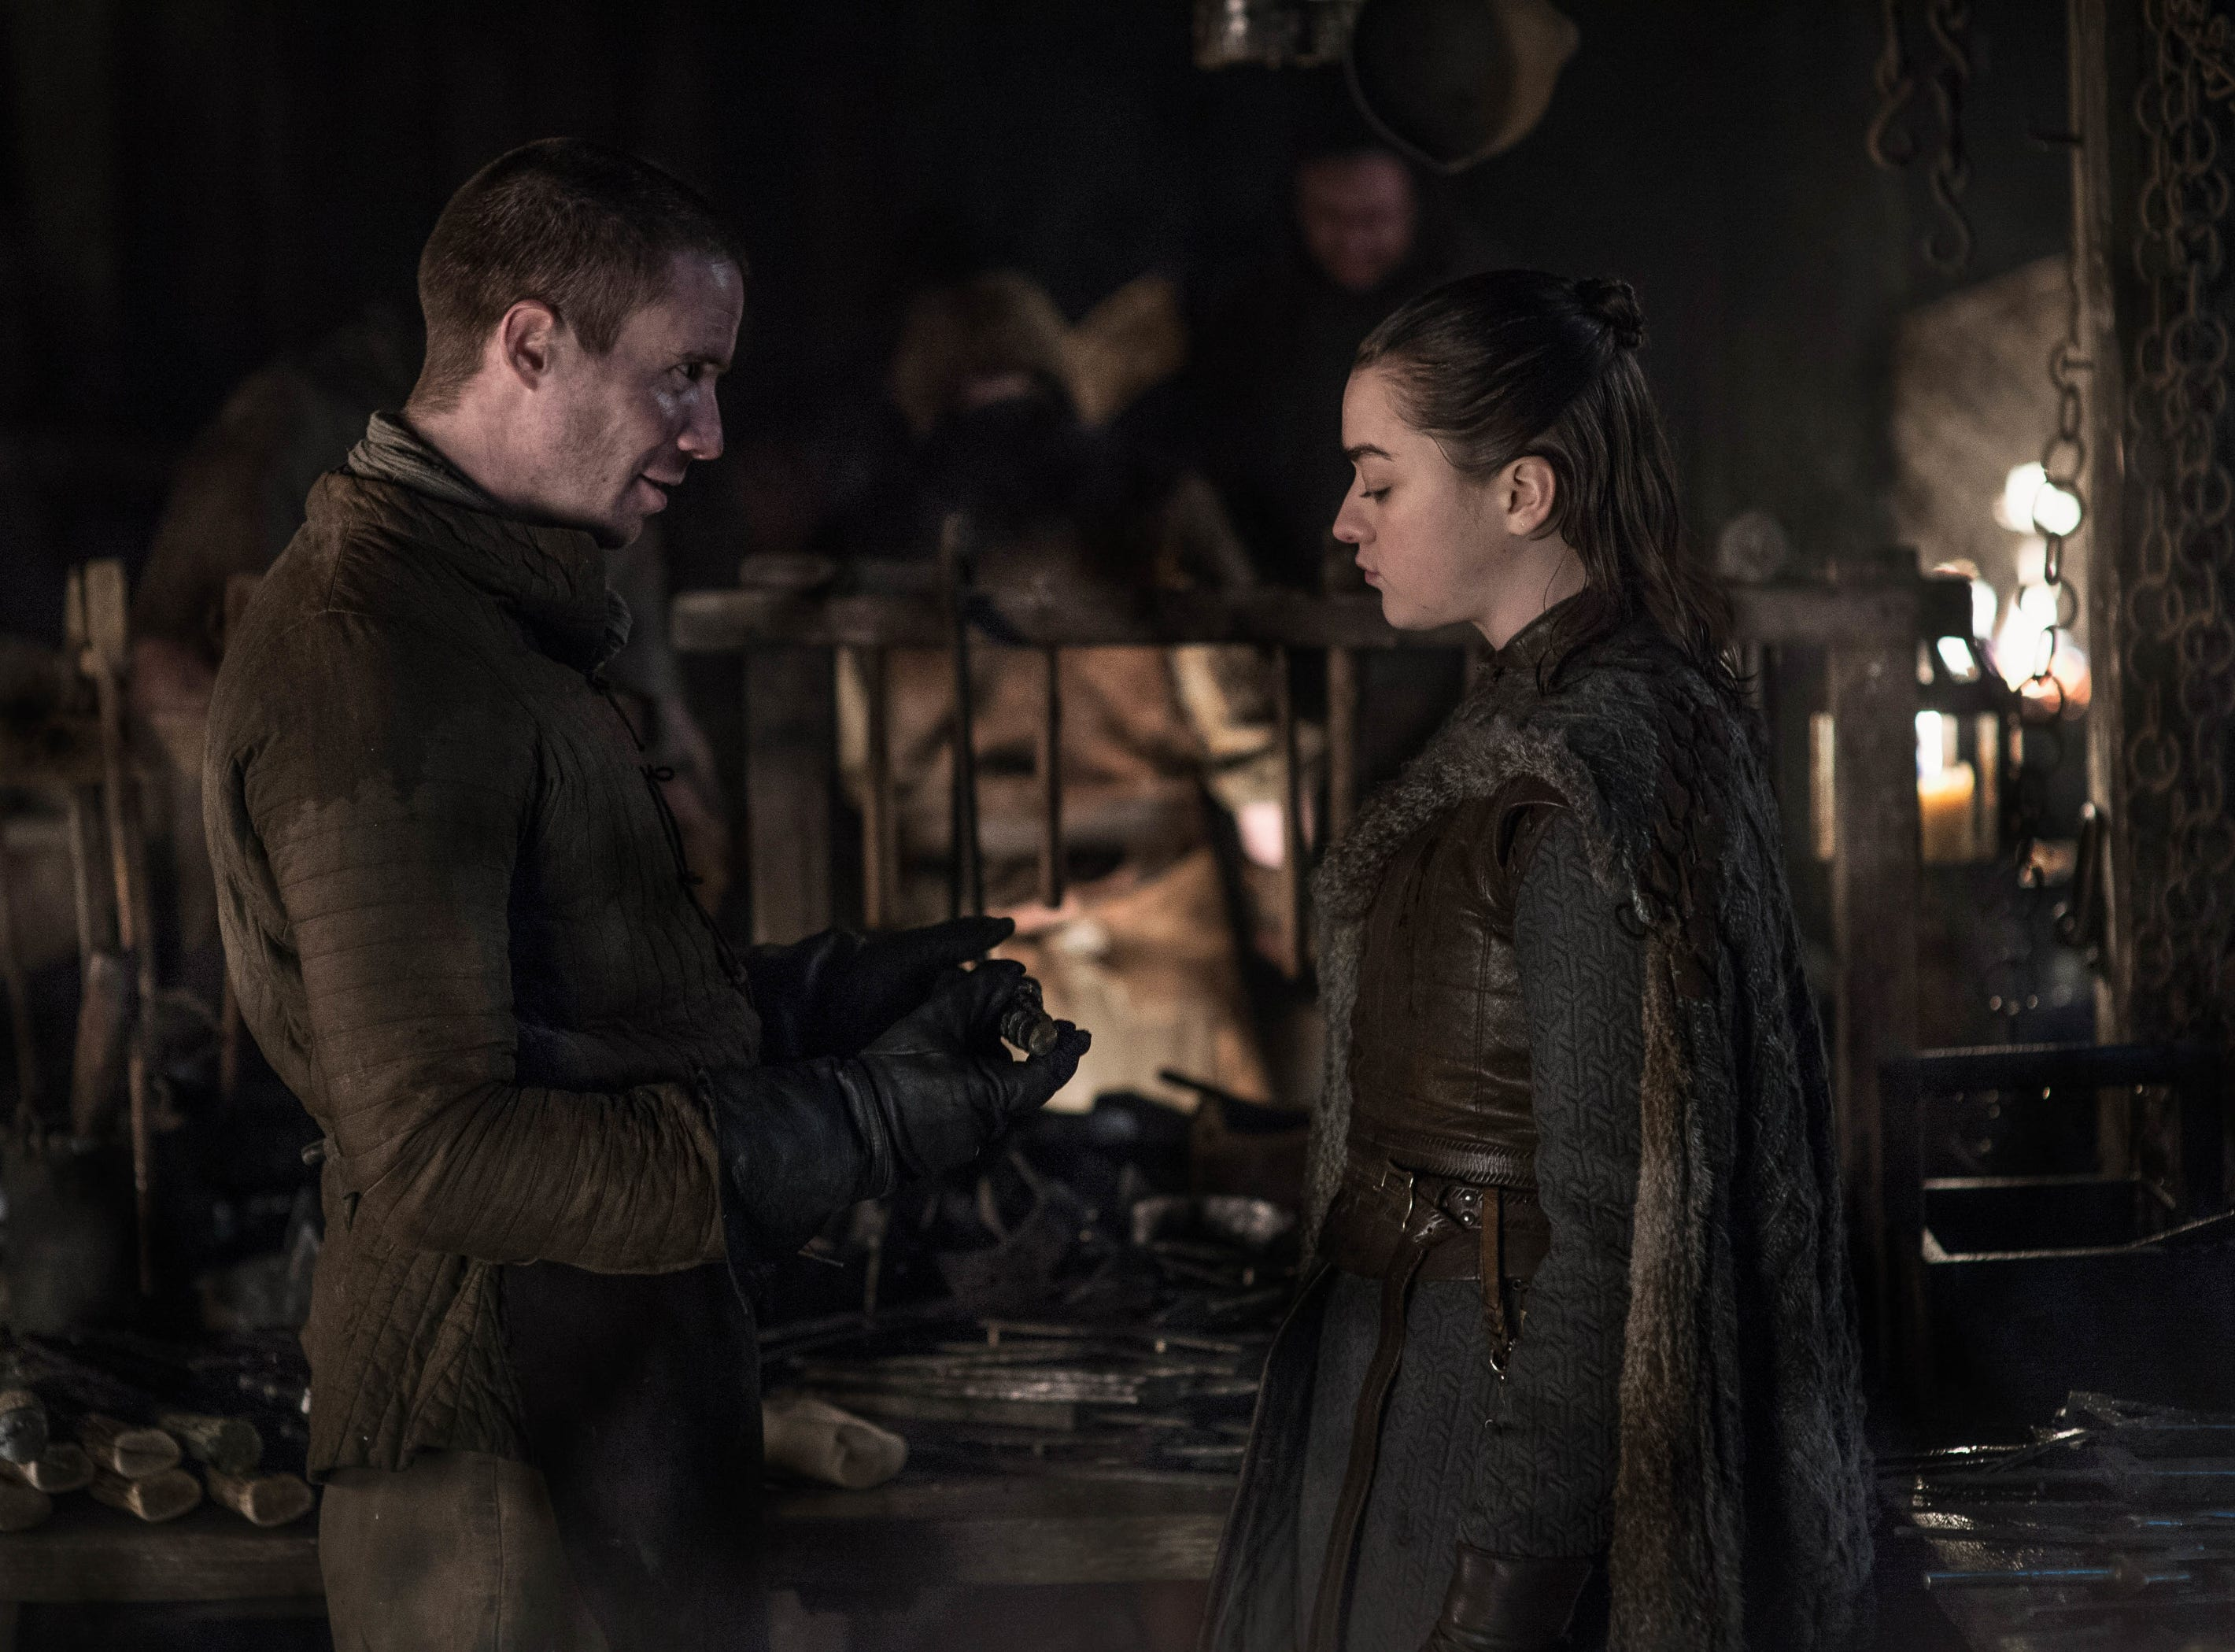 Arya Stark (Maisie Williams) asks Gendry (Joe Dempsie) for help on a project.